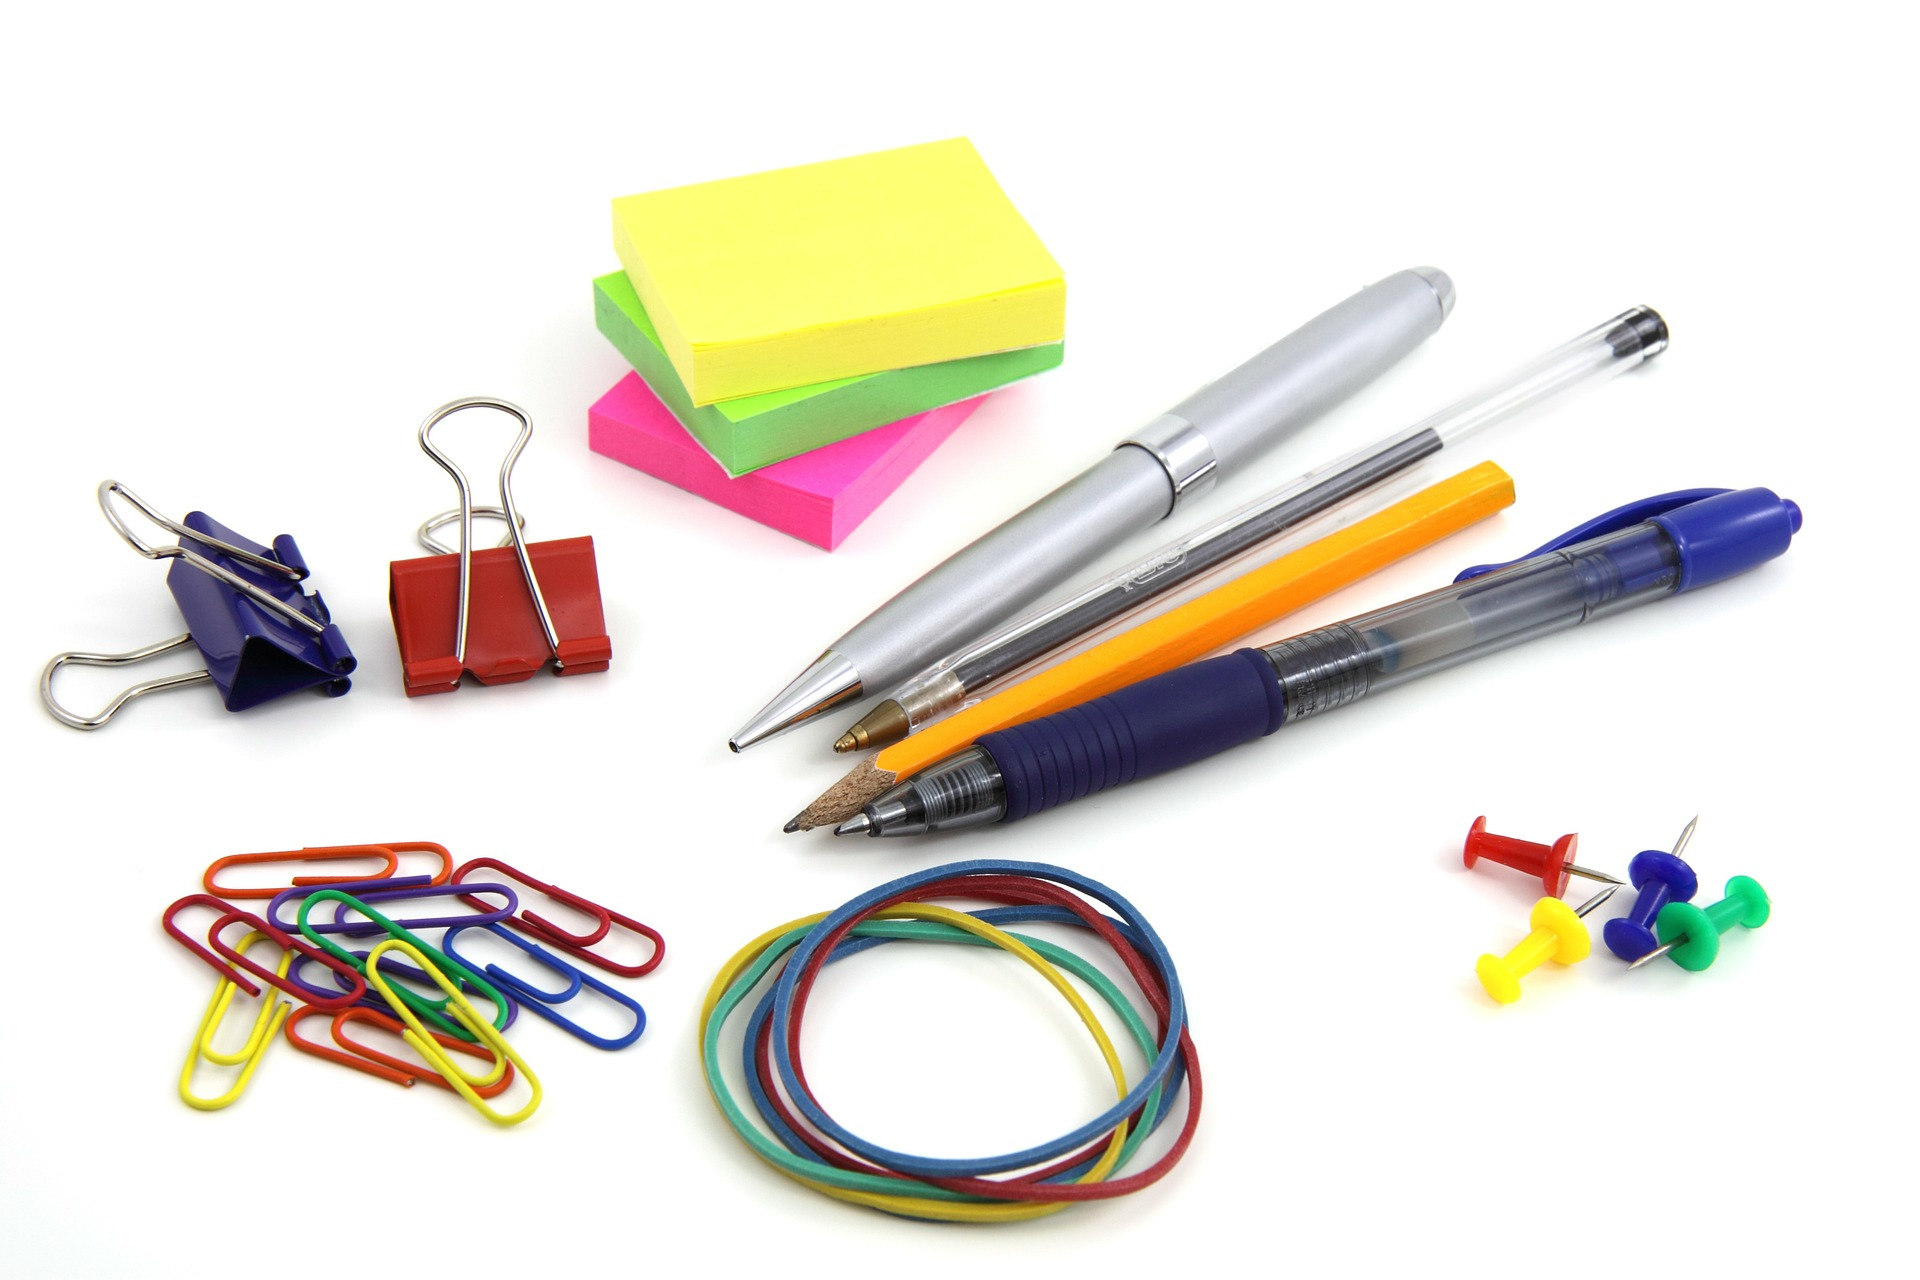 Where To Buy The Best Office Supplies in the UK